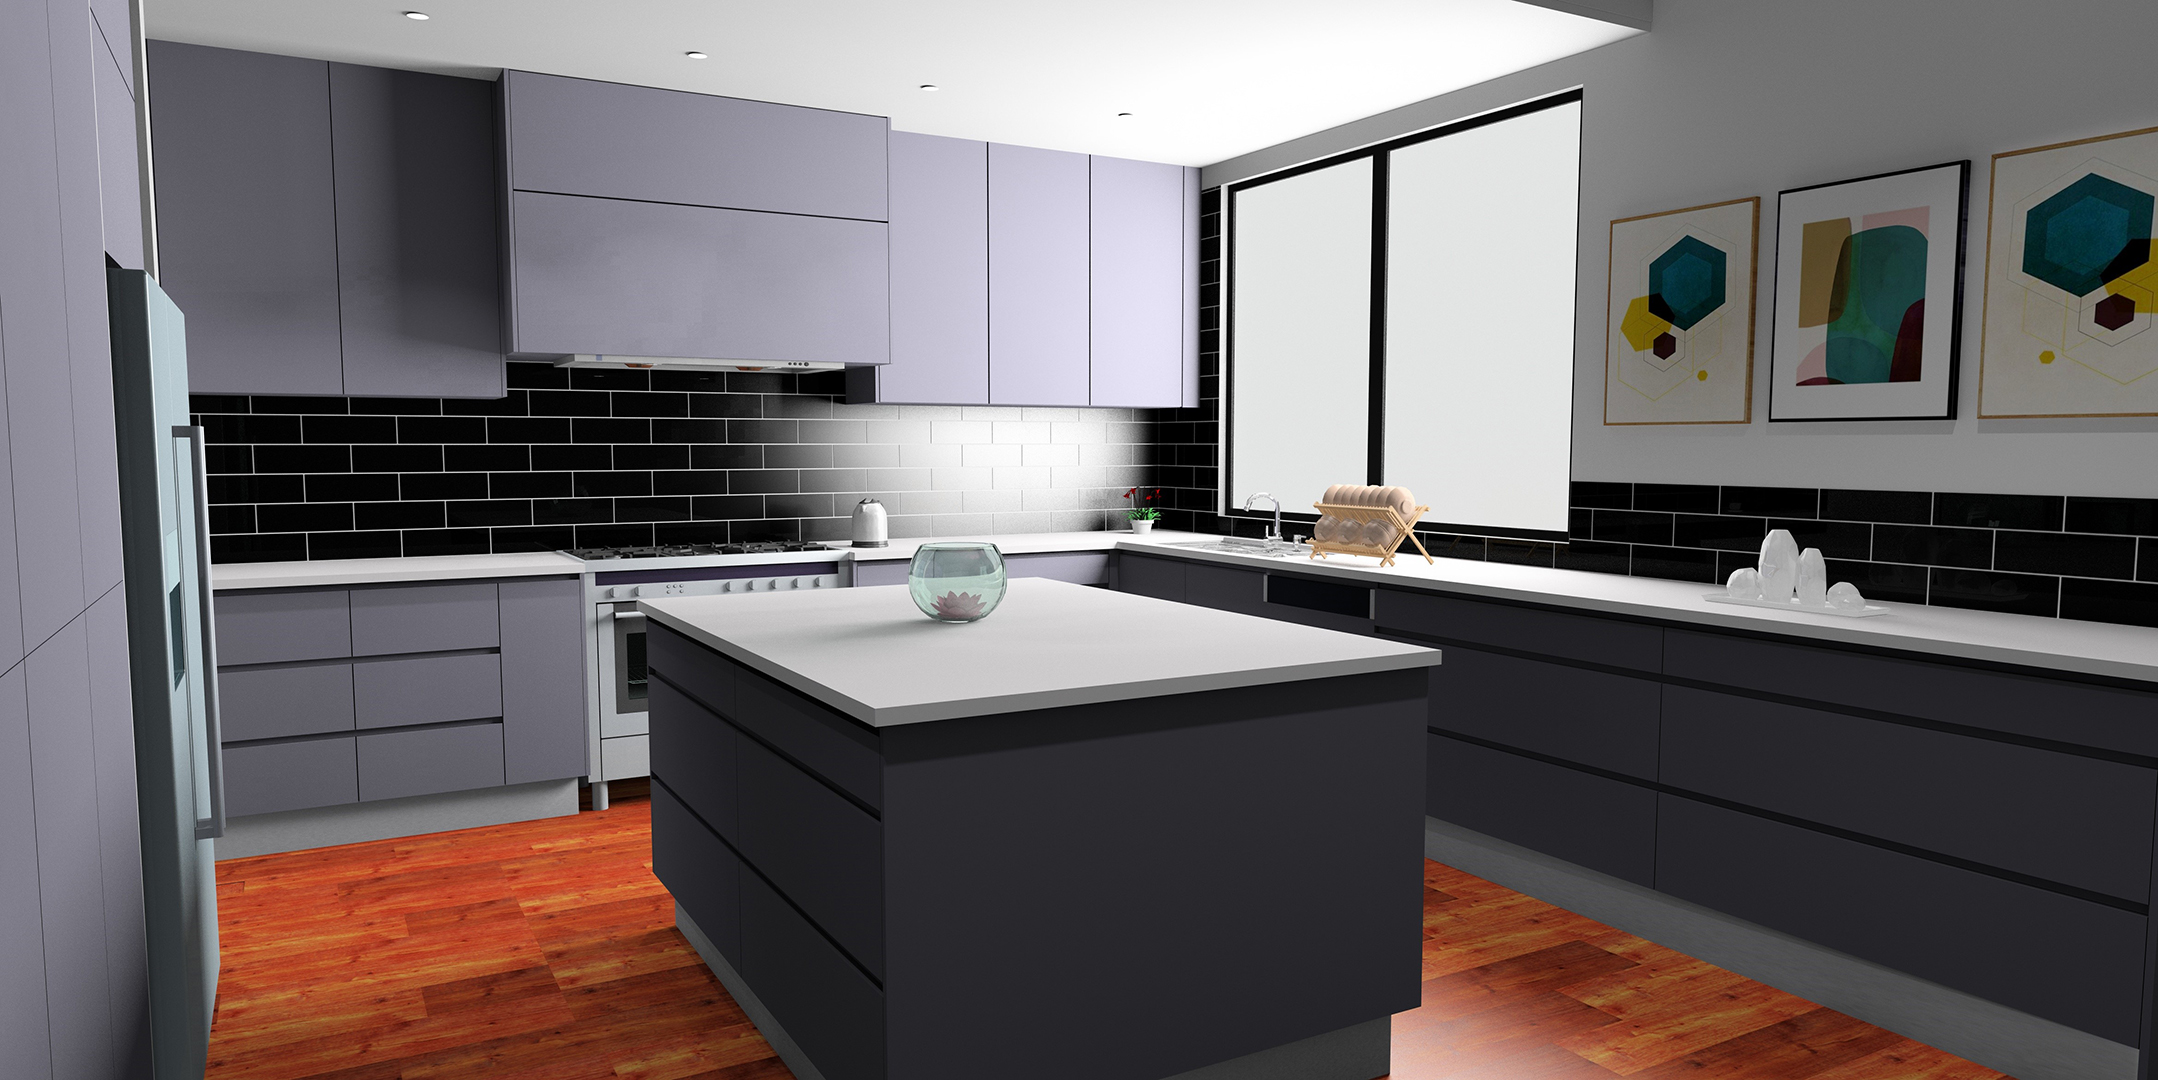 Kd Max 3d Kitchen Design Software Free Download Design Sell Kitchens With Kd Max Software Cabinets By Computer